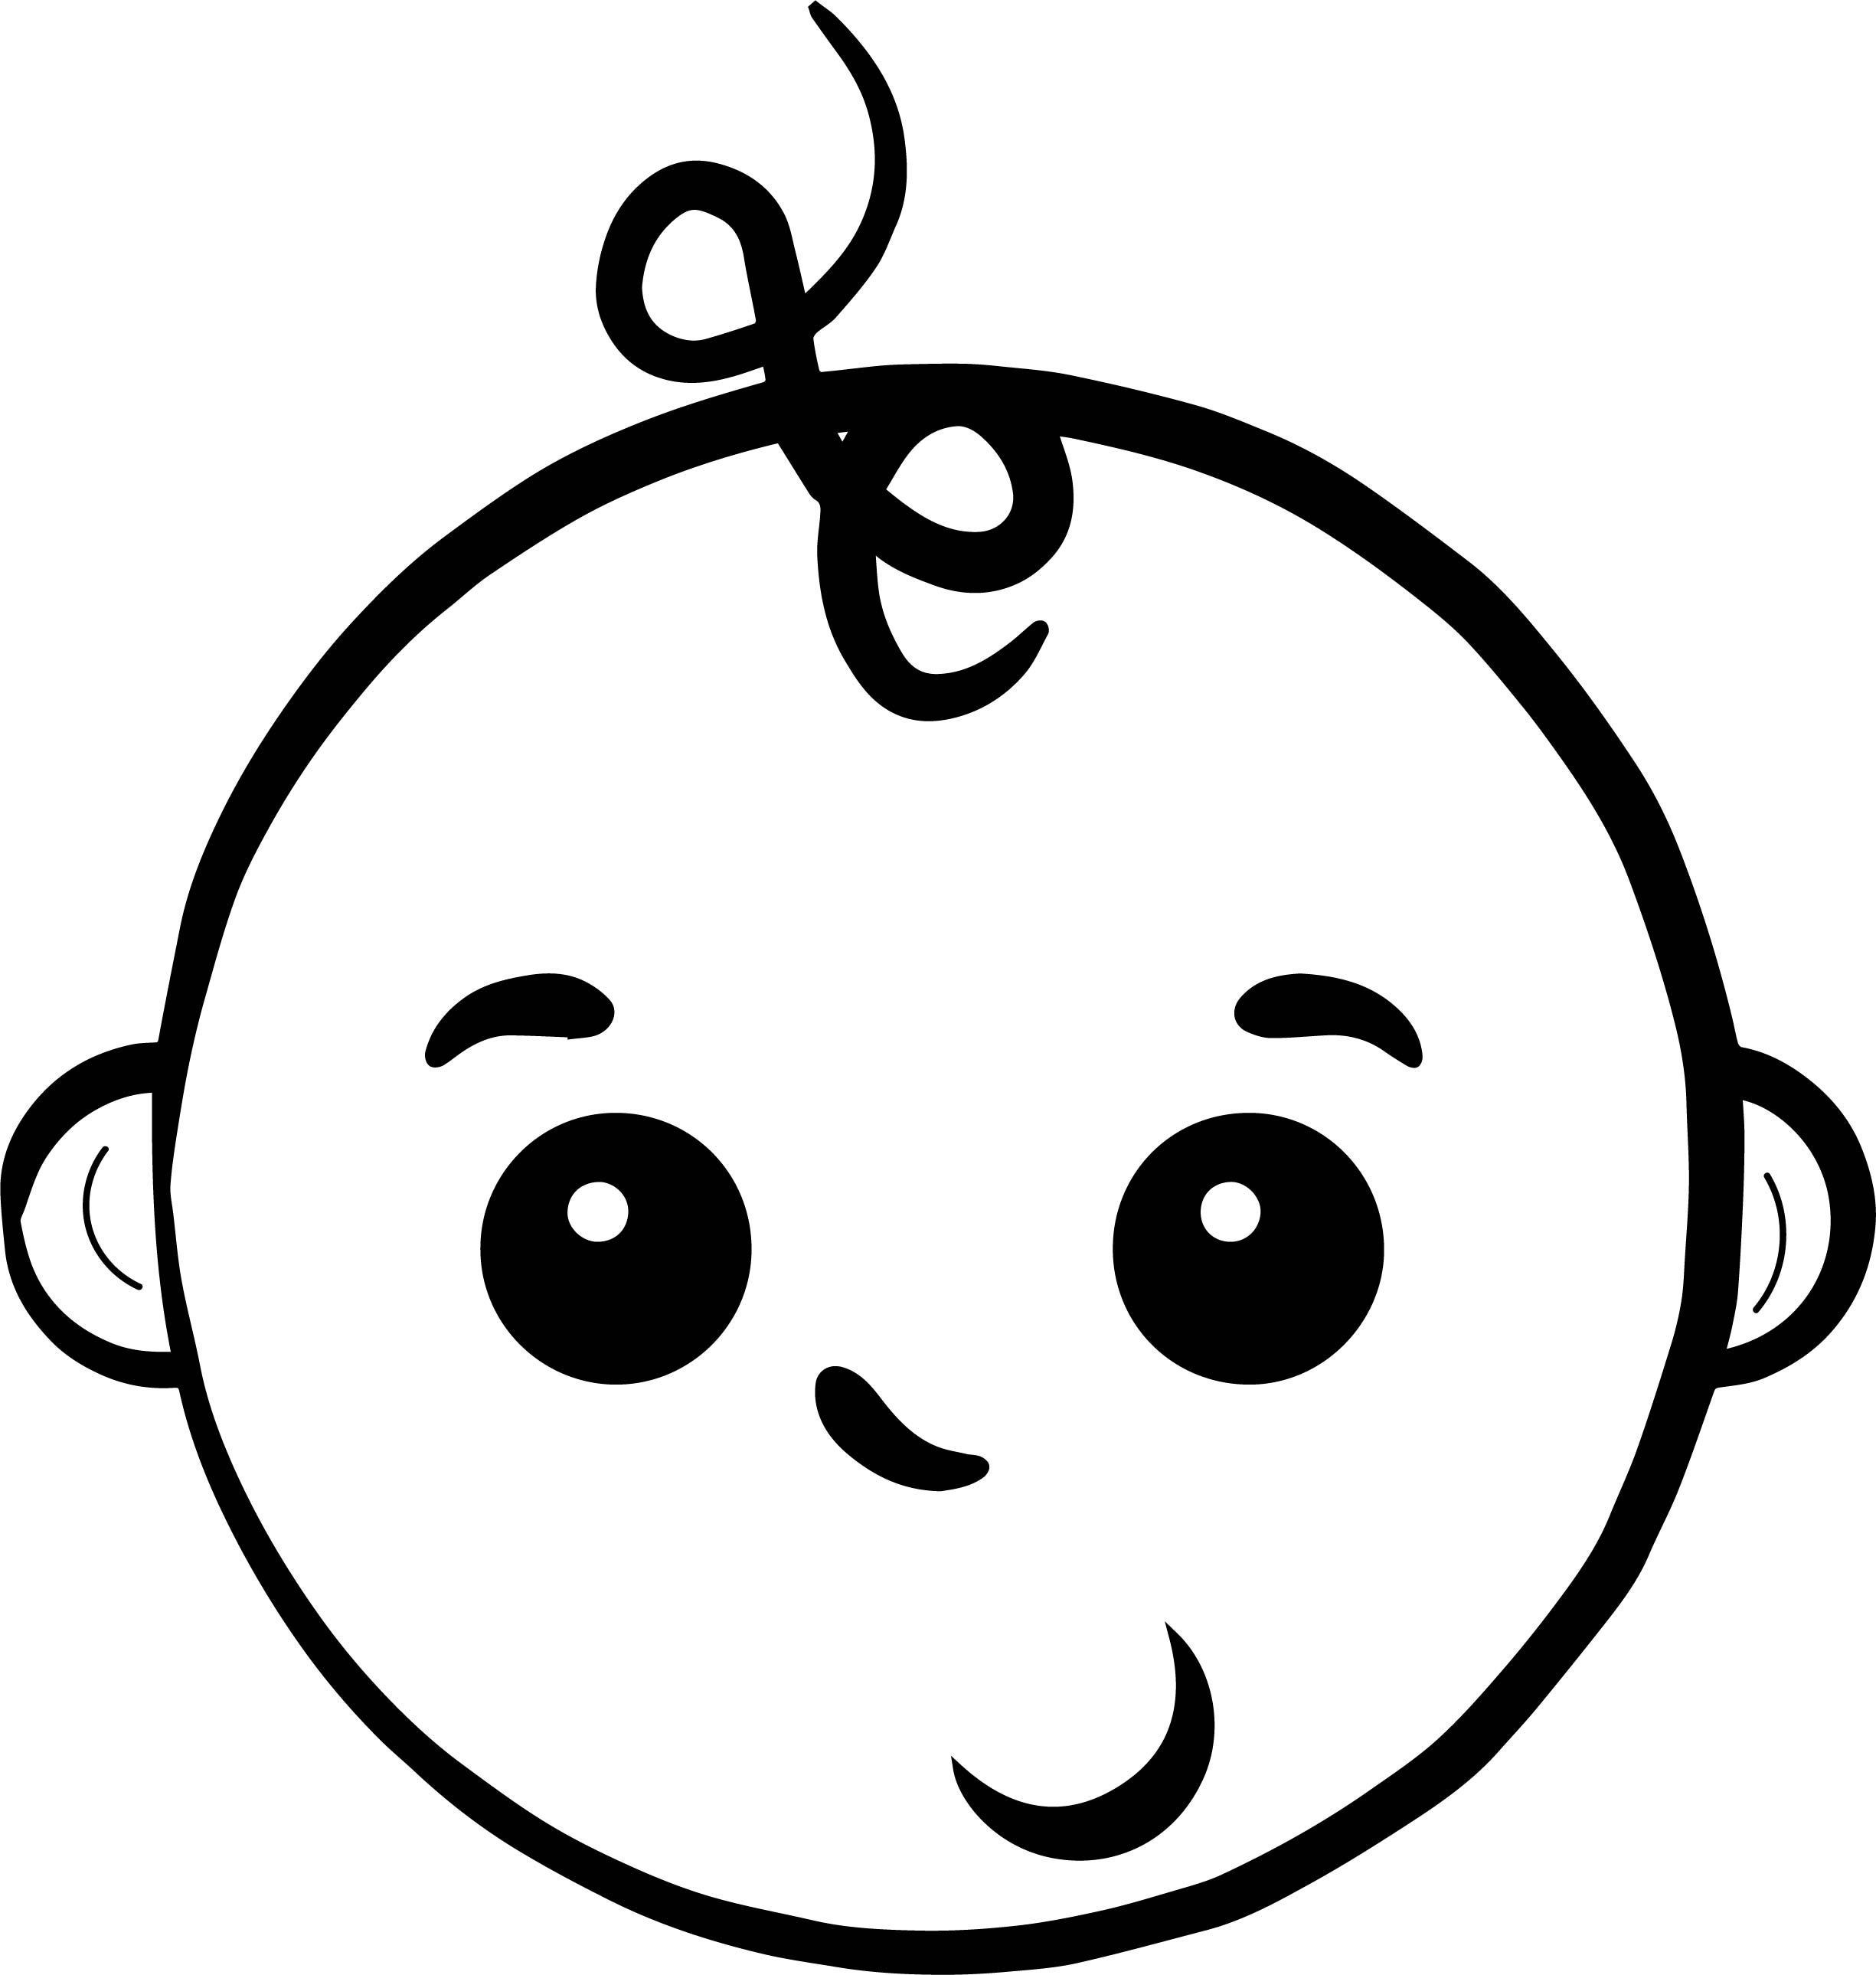 Baby Boy Face Coloring Page Coloring Pages For Boys Boy Coloring Coloring Pages For Kids